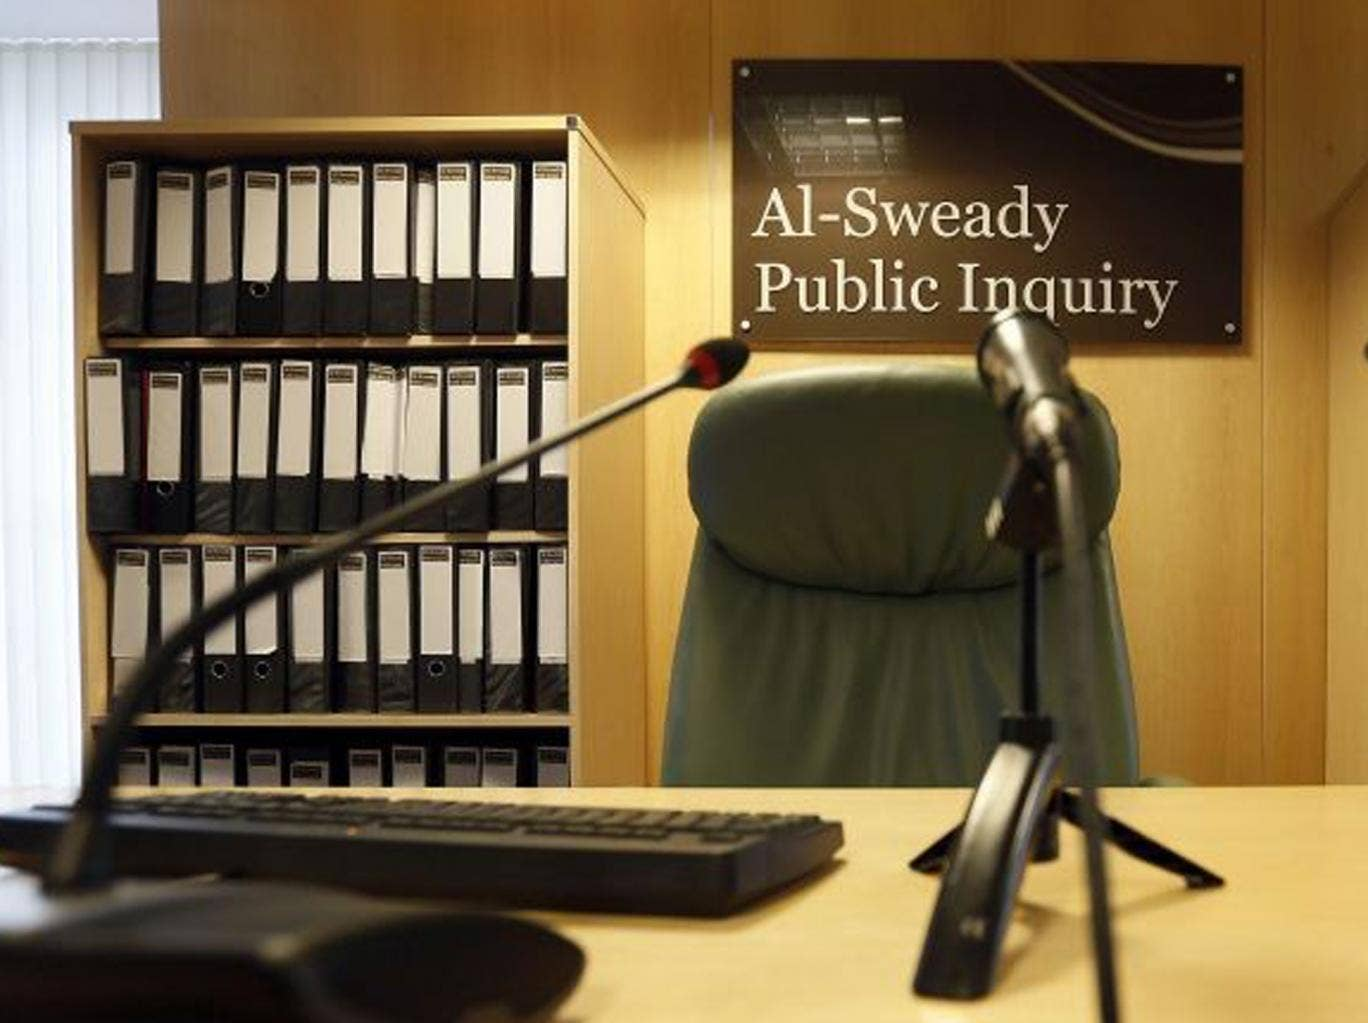 The venue of the Al-Sweady Inquiry is seen on the first day of the inquiry, in central London on 4 March 2013.